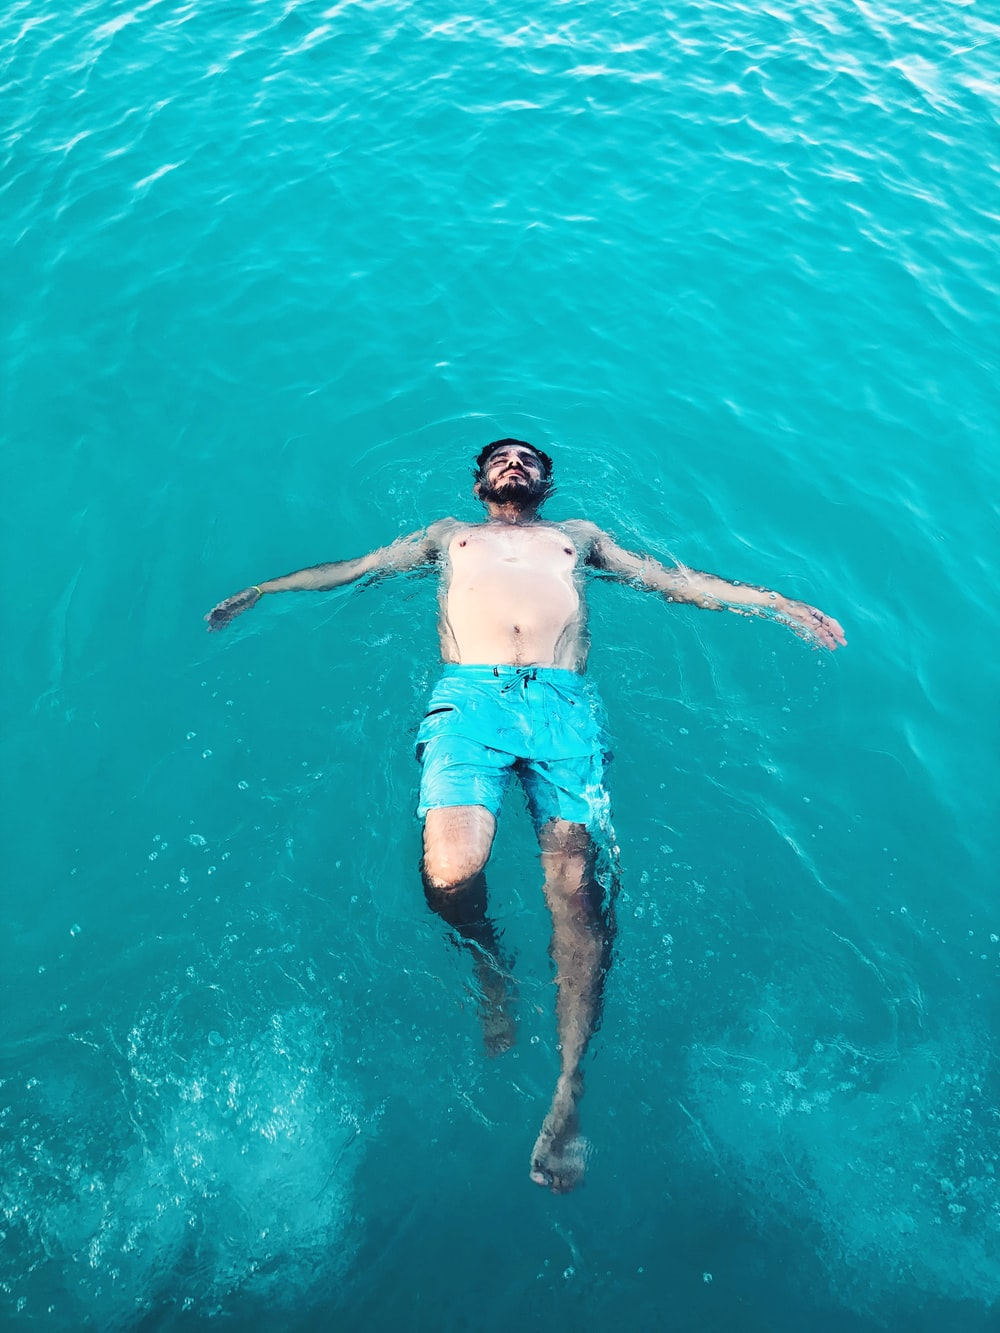 topless man swimming on body of water during daytime